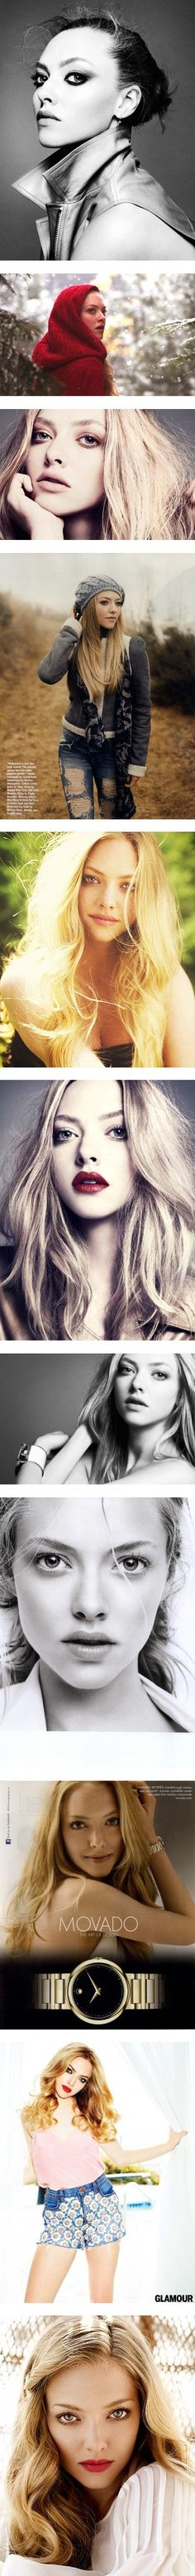 """Amanda Seyfried ♥"" People tell me I look like her, but I don't really see it..."